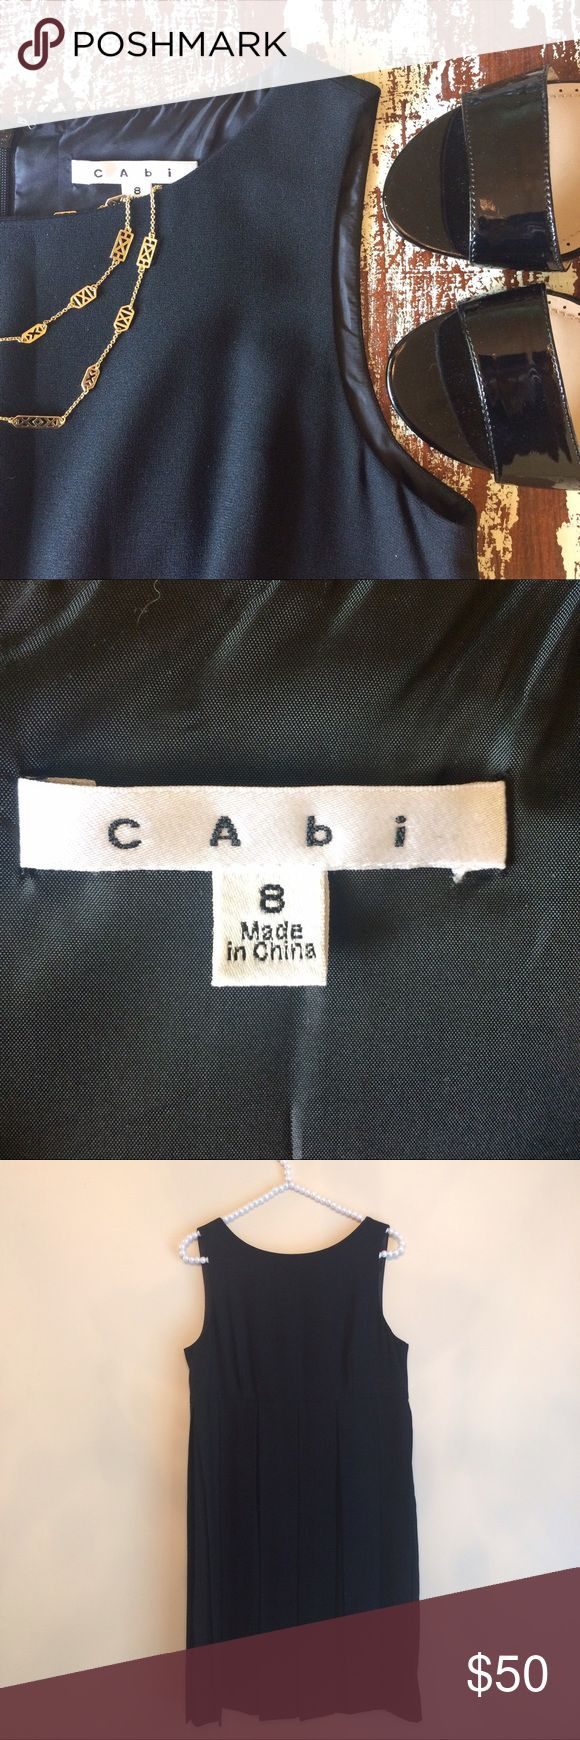 """CAbi Black Flapper Dress #236 size 8 Black Flapper Dress #236 size 8 by CAbi Skirt inside is straight.  Measure: length 37"""", bust 36"""", waist 34"""", hips 40"""" Material: Polyester and acetate  Condition: Like new CAbi Dresses"""